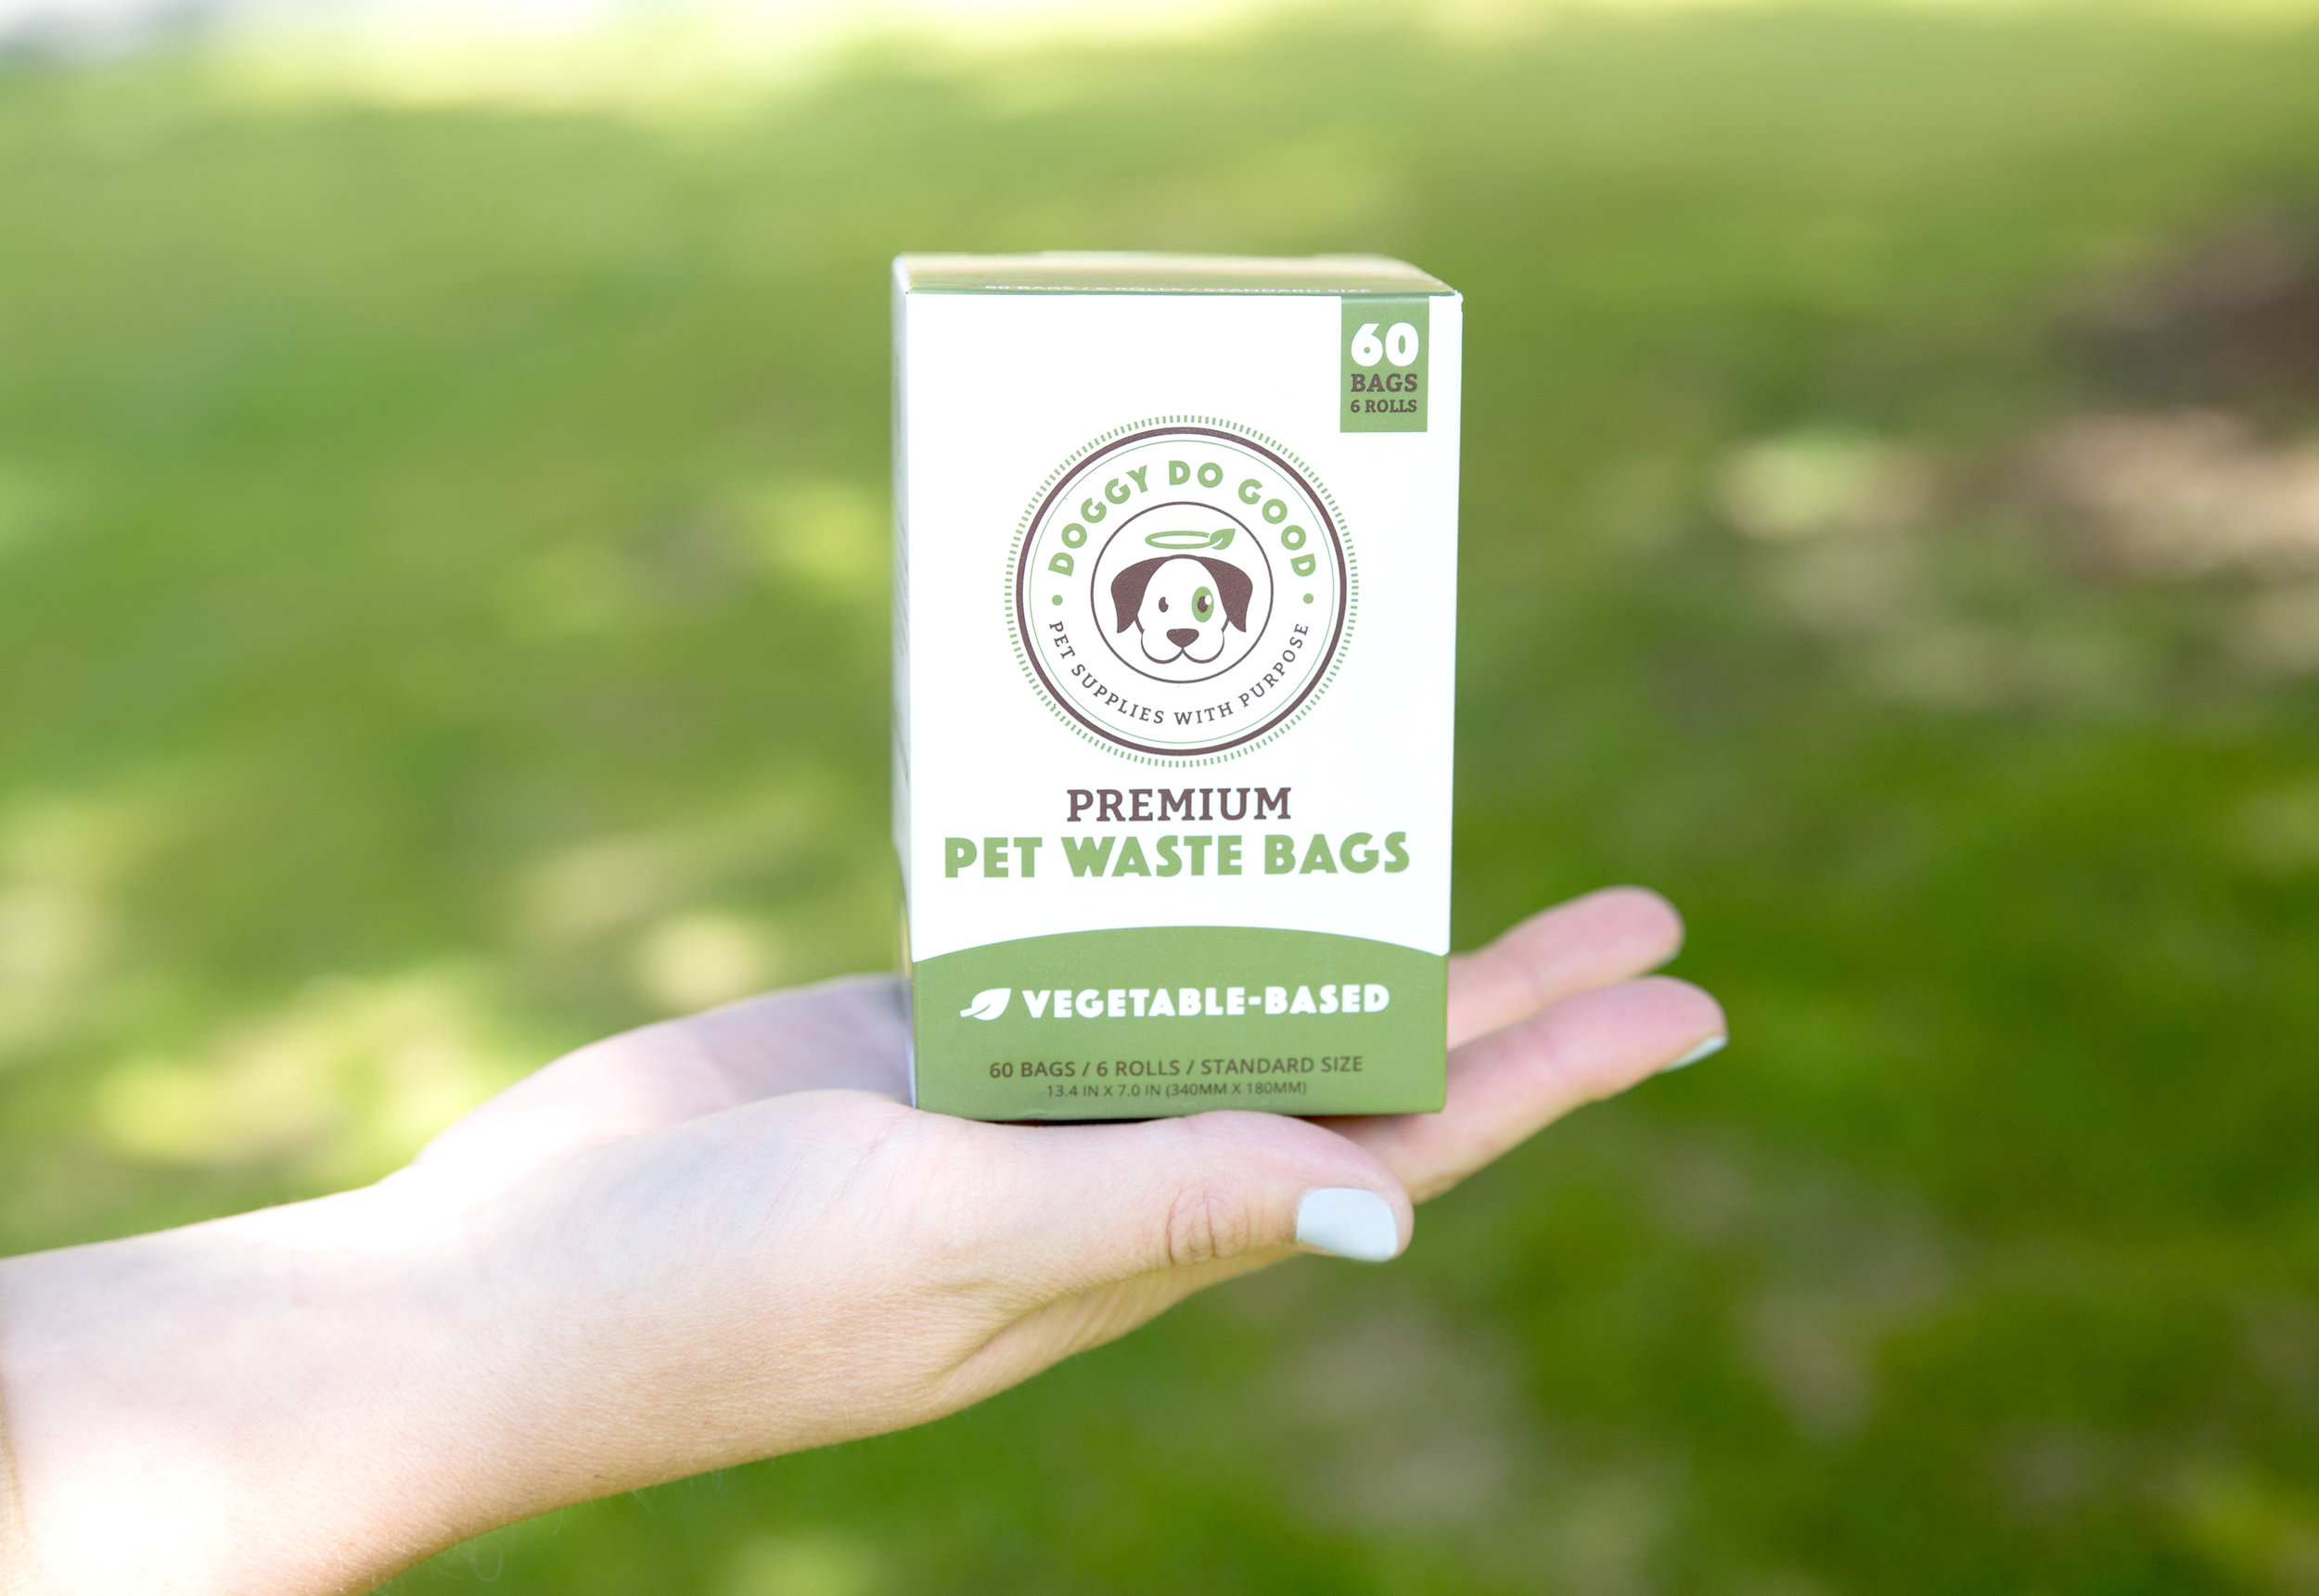 Doggy Do Good All Natural and Eco-Friendly Dog Poop Bags and Wipes on The Dapple Dog Lifestyle Site